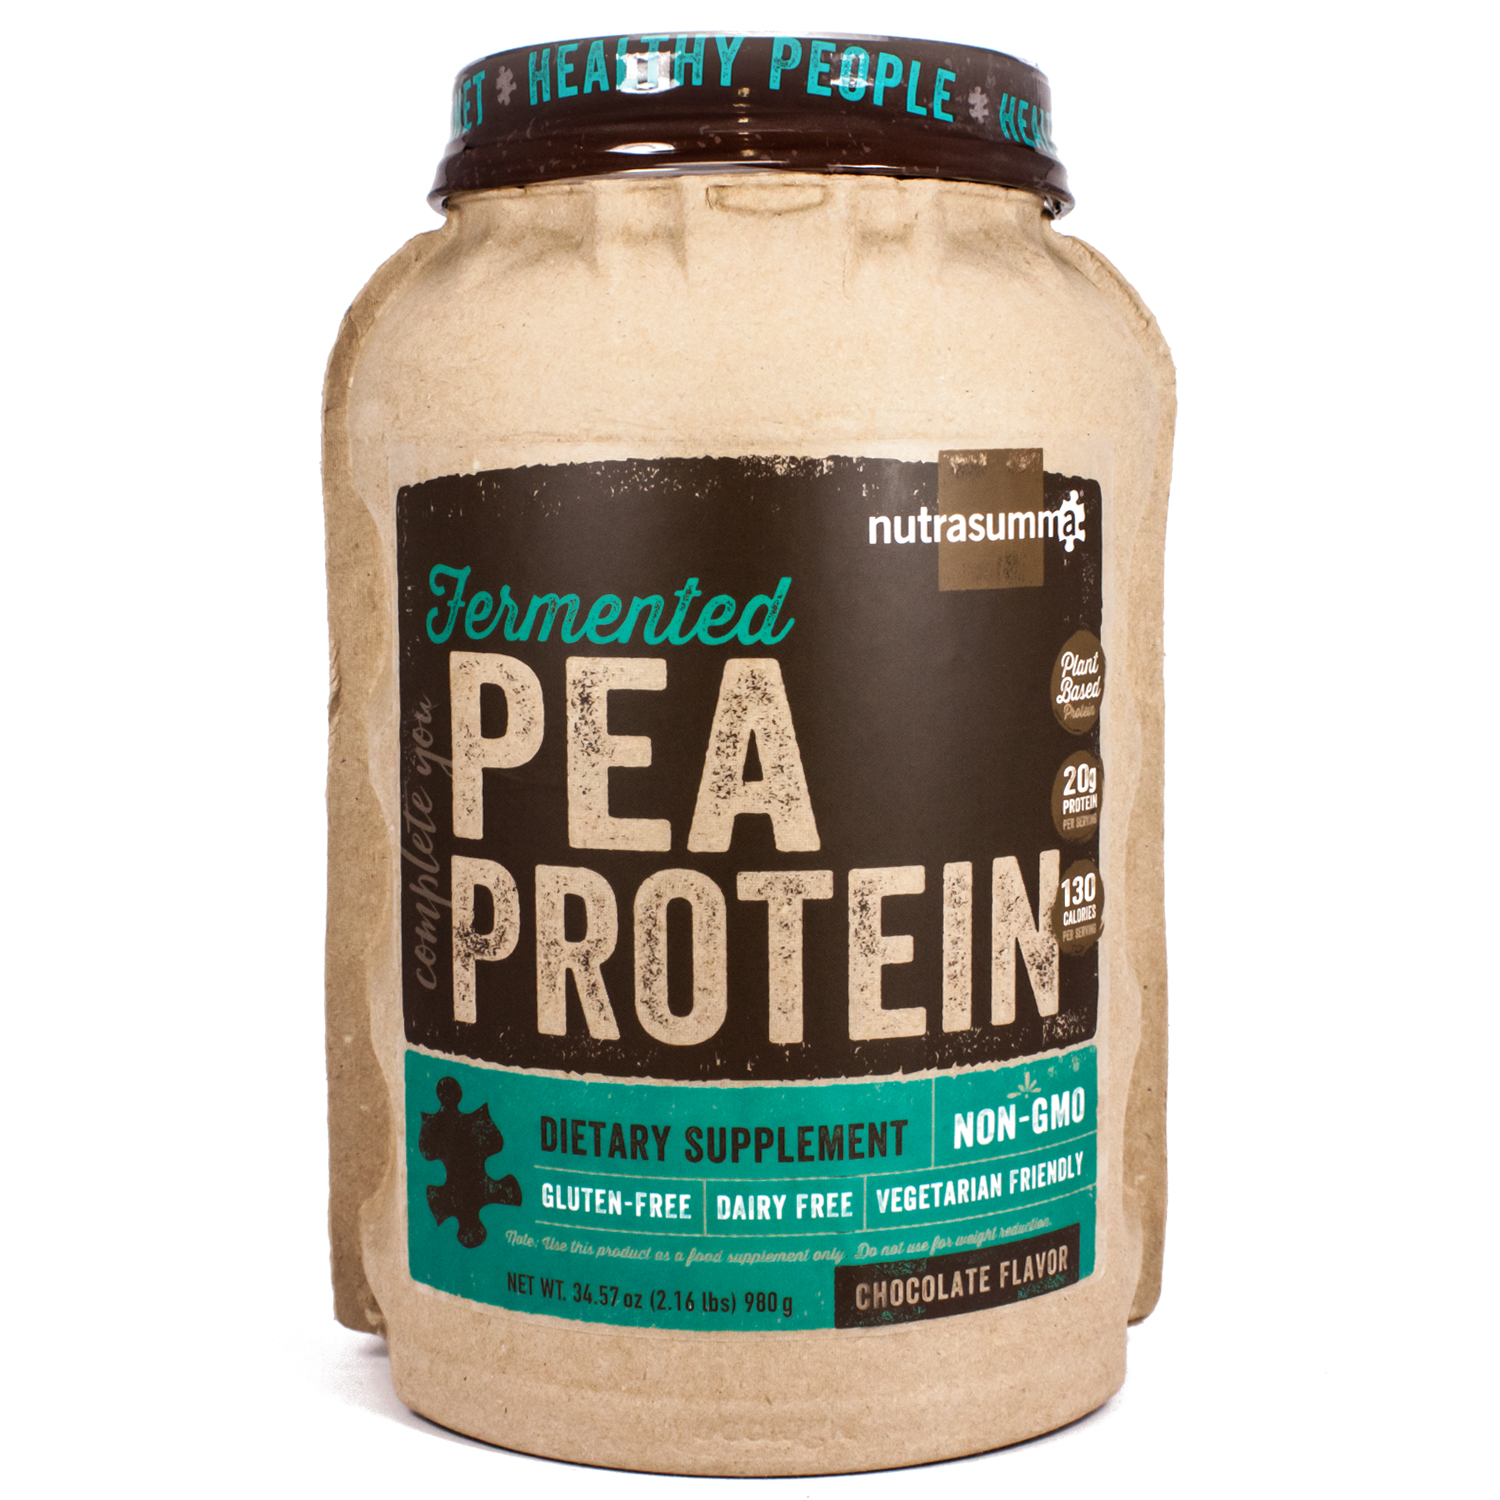 Fermented Pea Protein Chocolate By Nutrasumma - 34 Ounces